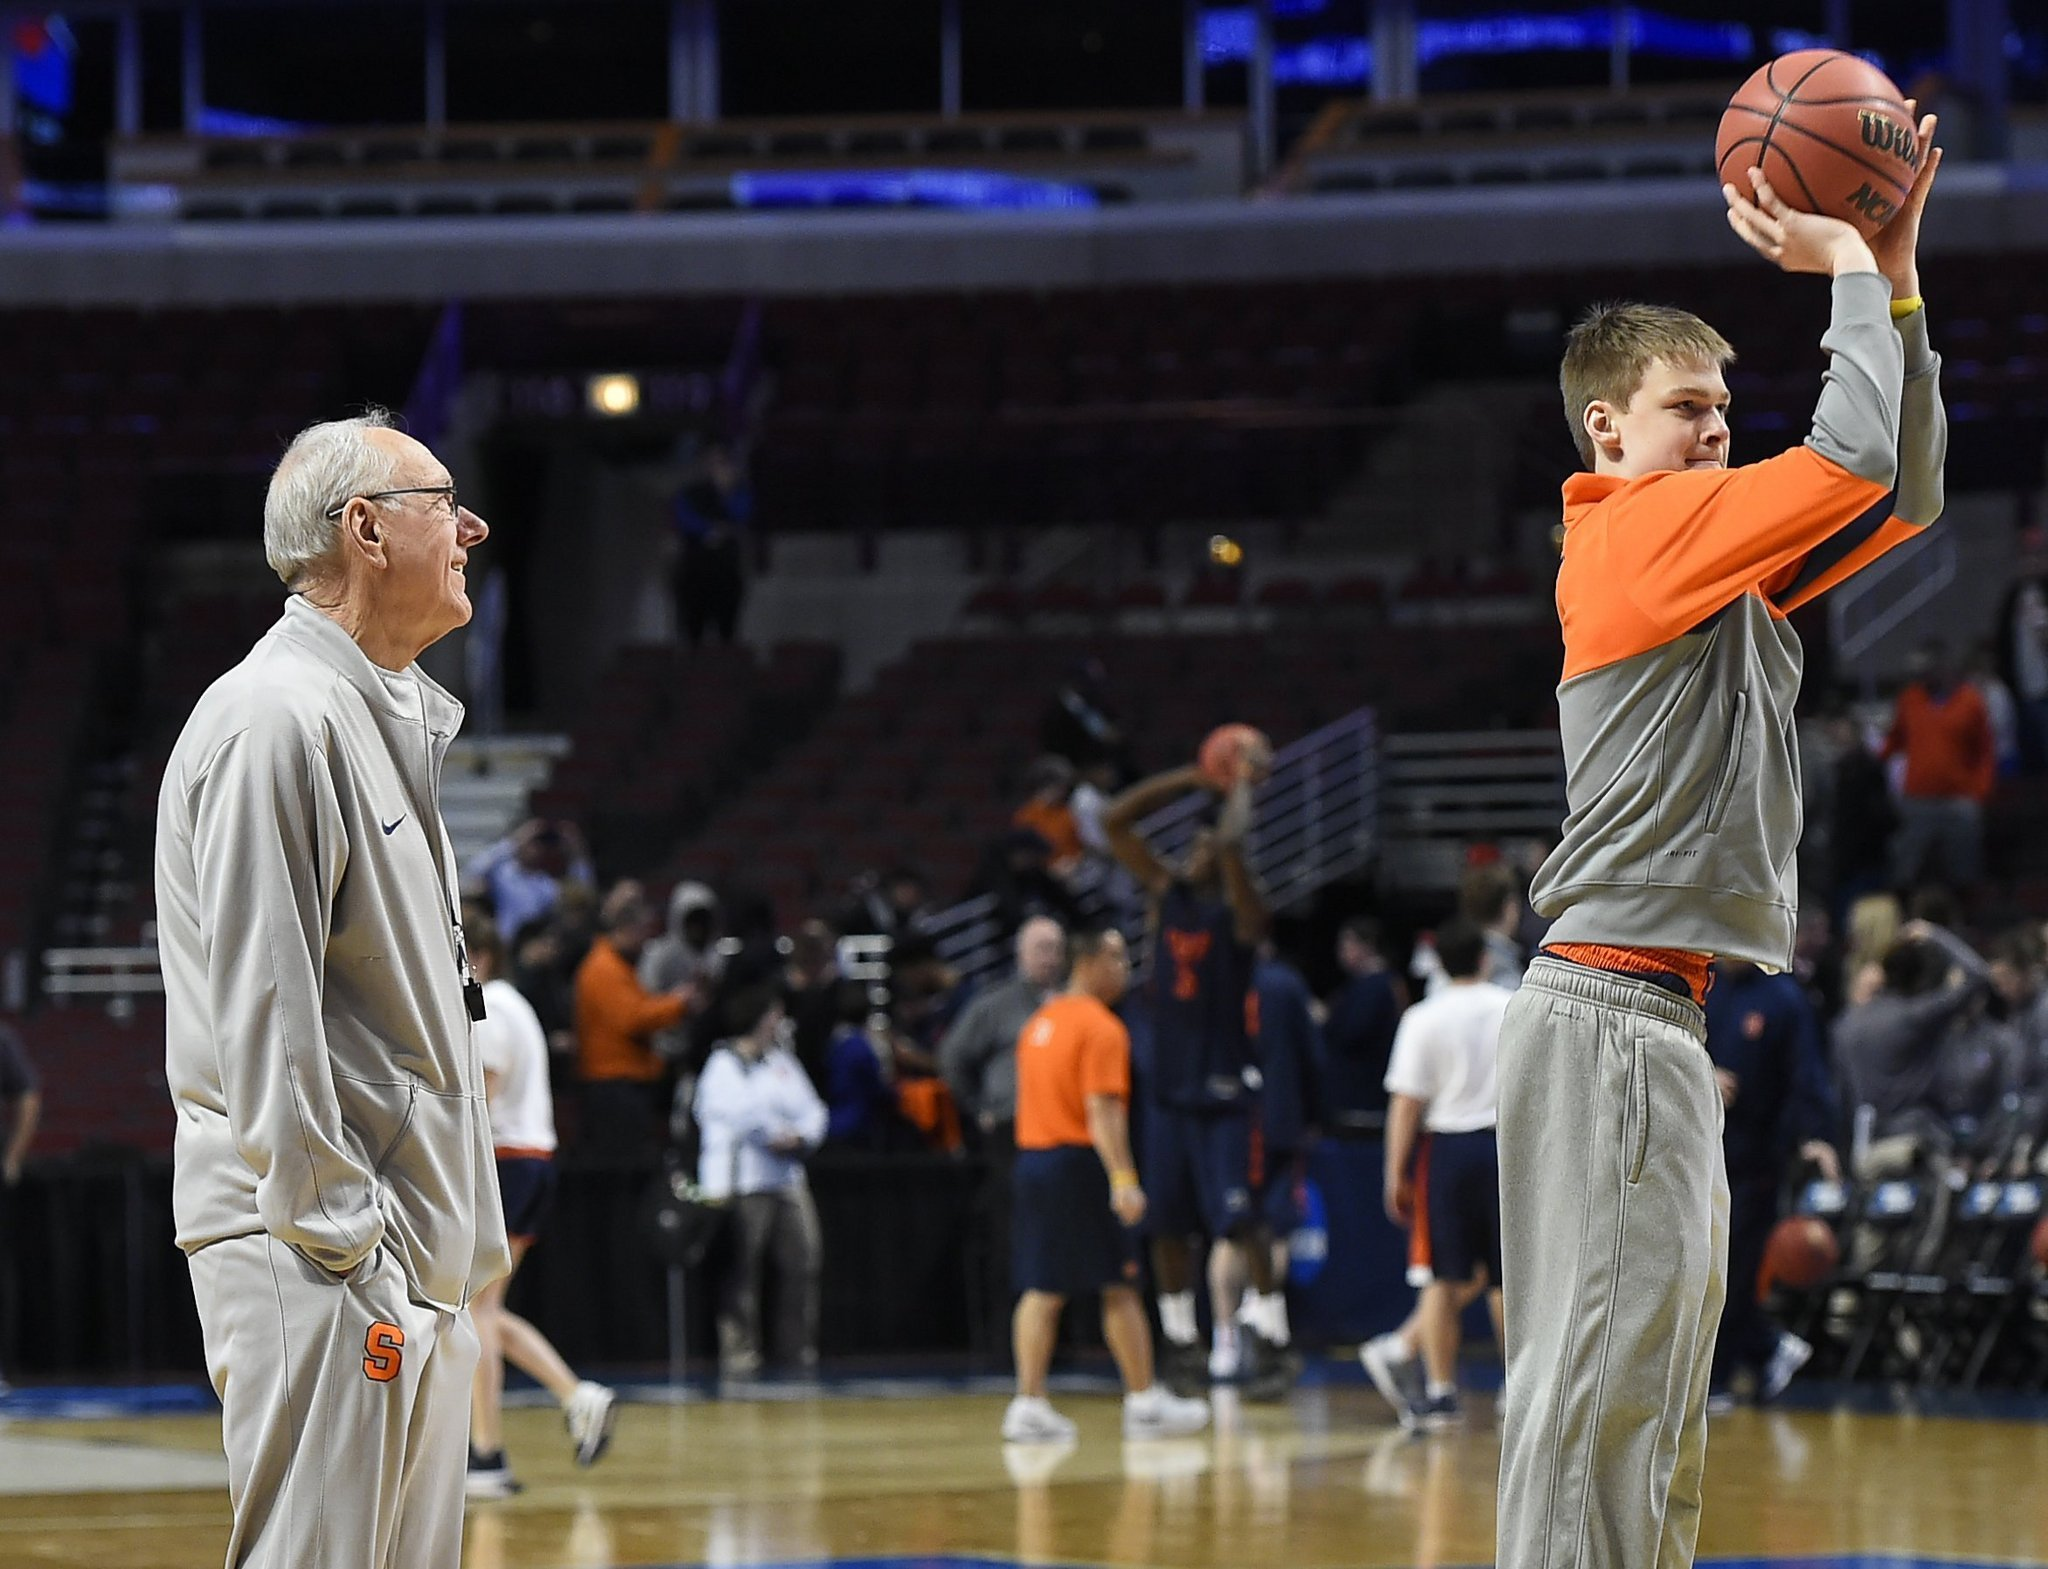 Jim Boeheim On His Kids College Basketball Recruiting I Don T Get